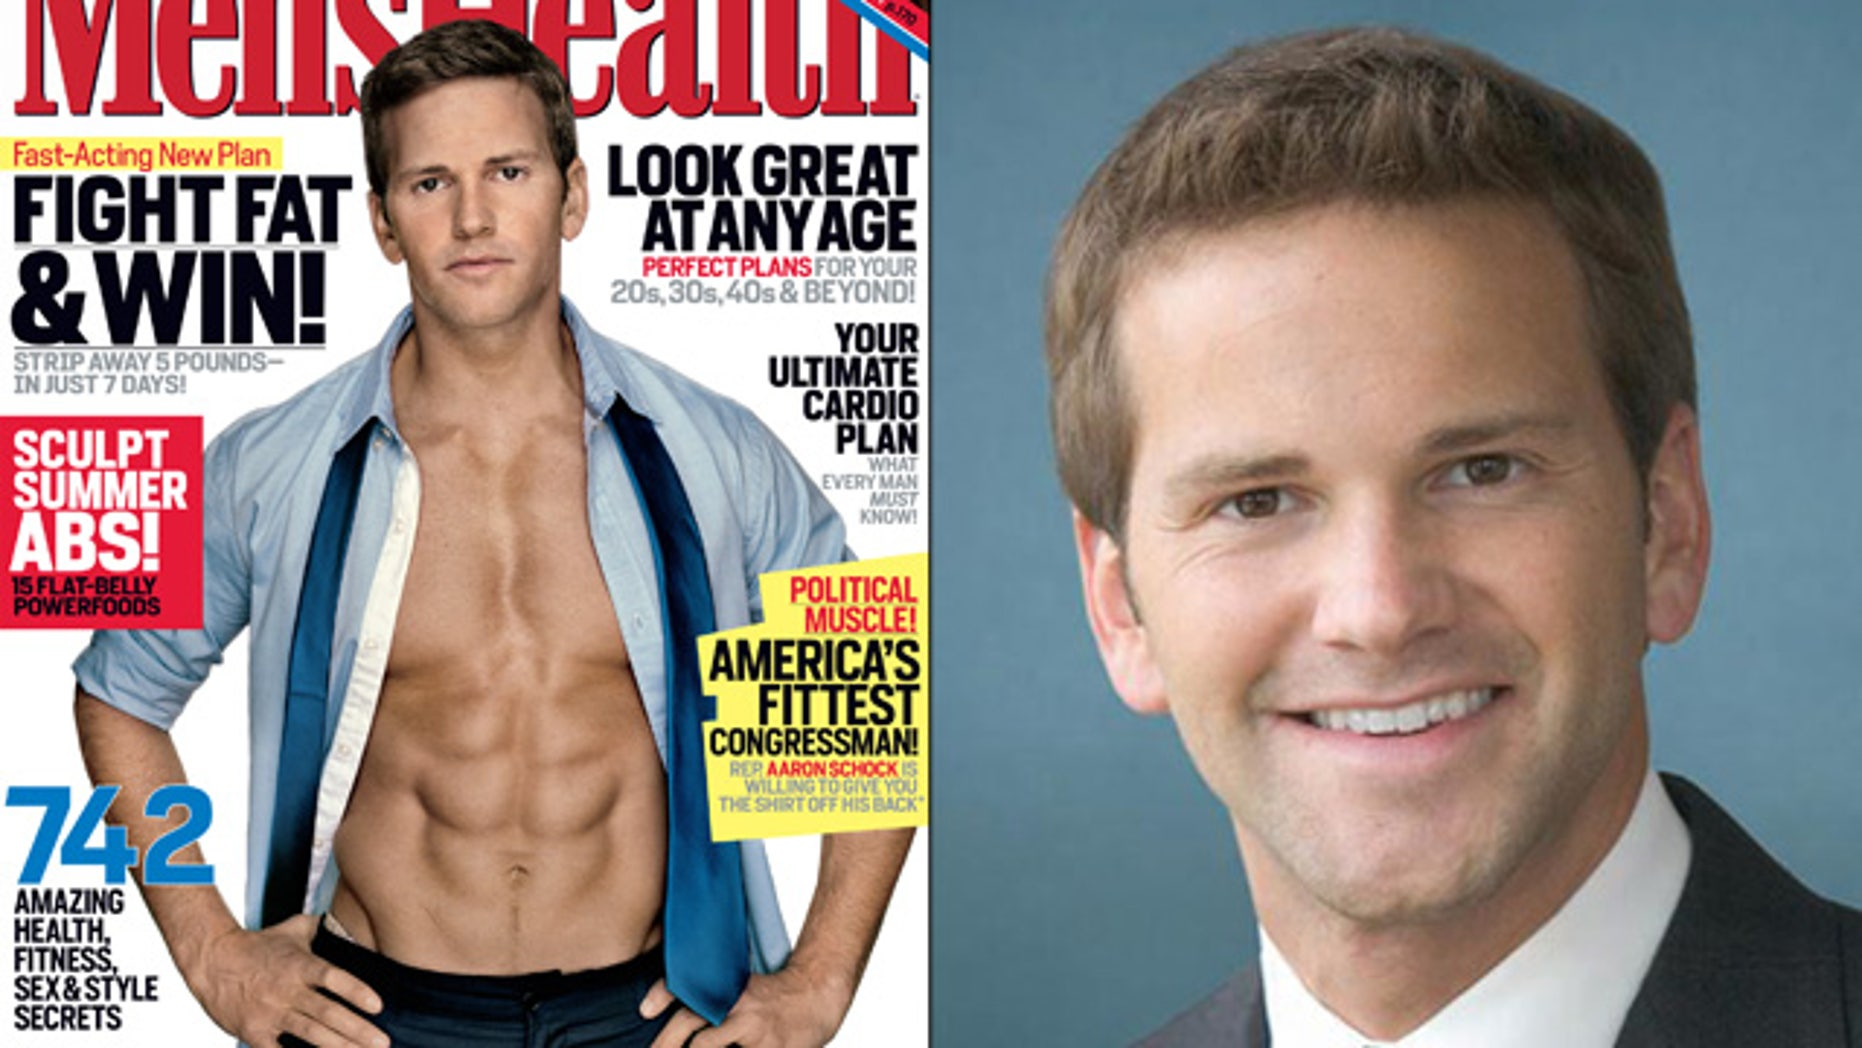 Shown here is Rep. Aaron Schock, in his official photo and on the cover of Men's Health magazine in 2011.